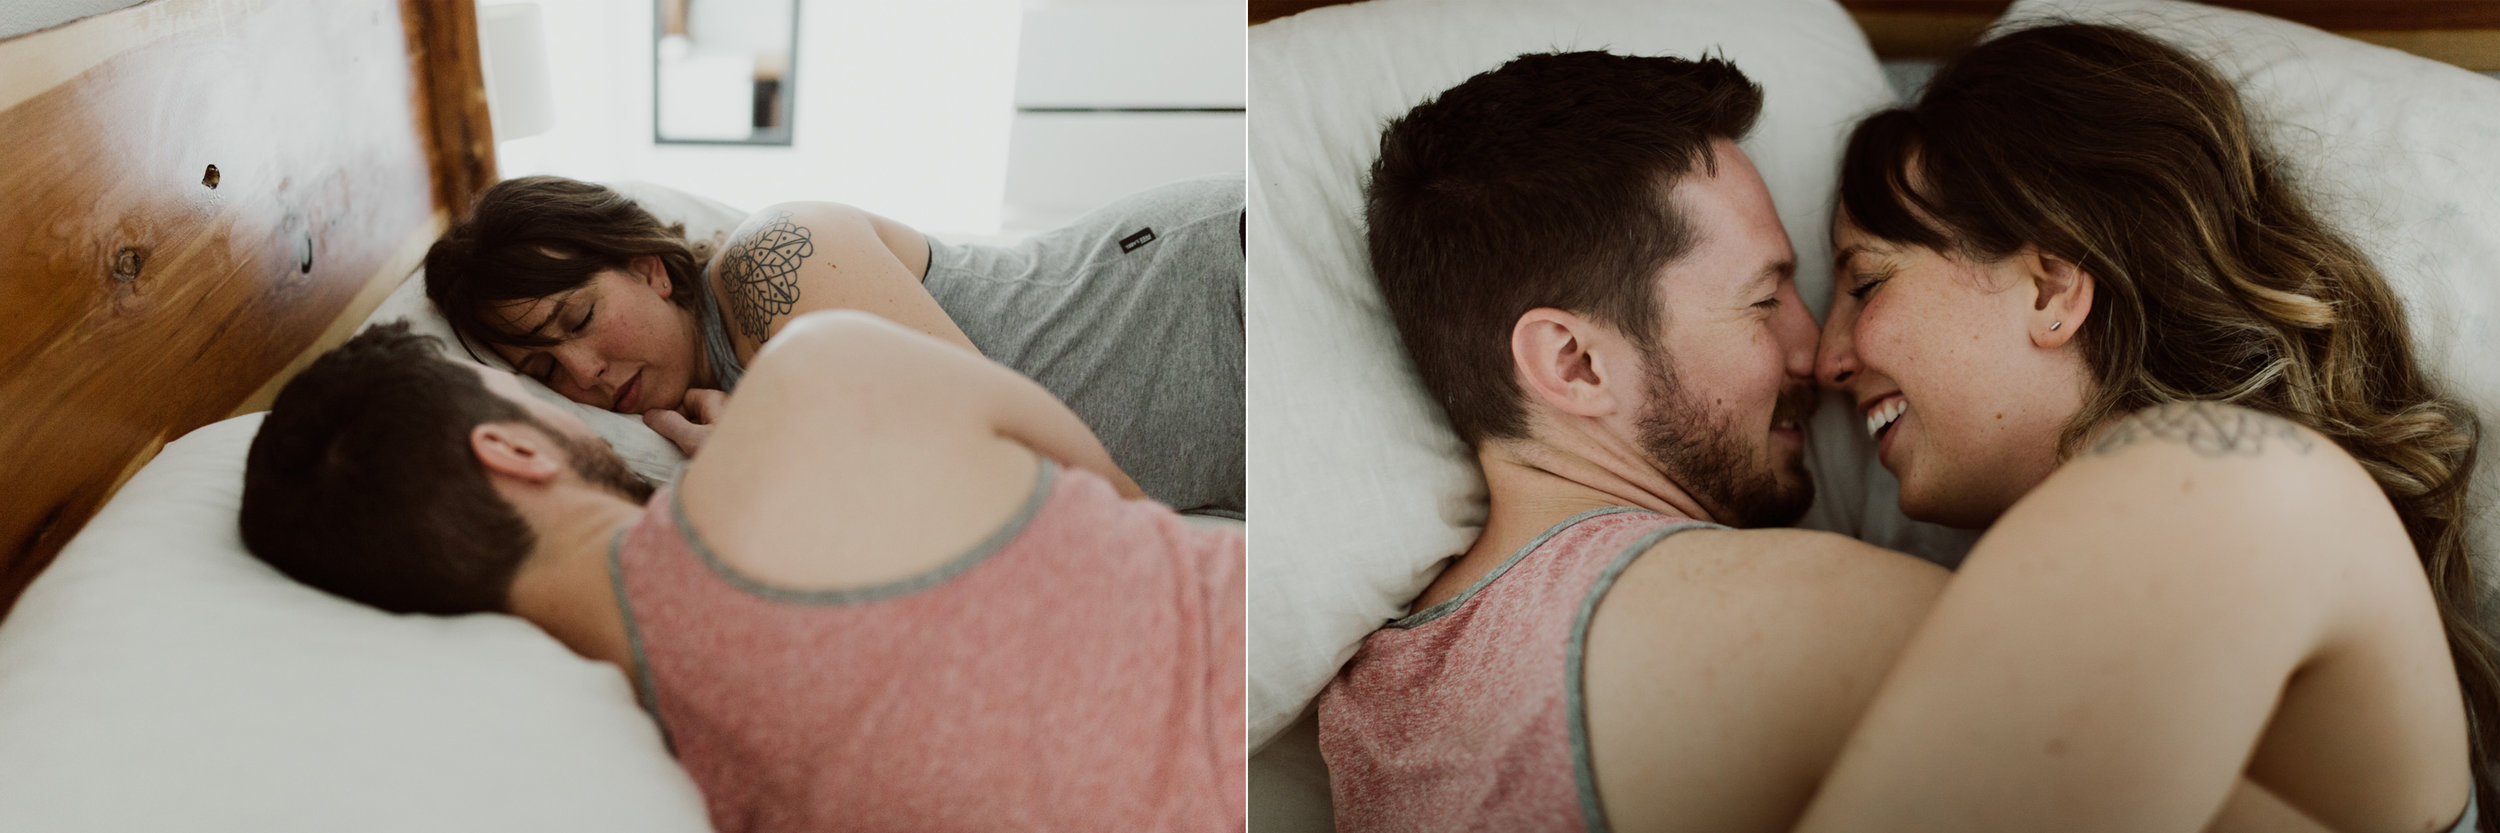 cedarandpines-intimate-in-home-session_ps5.jpg